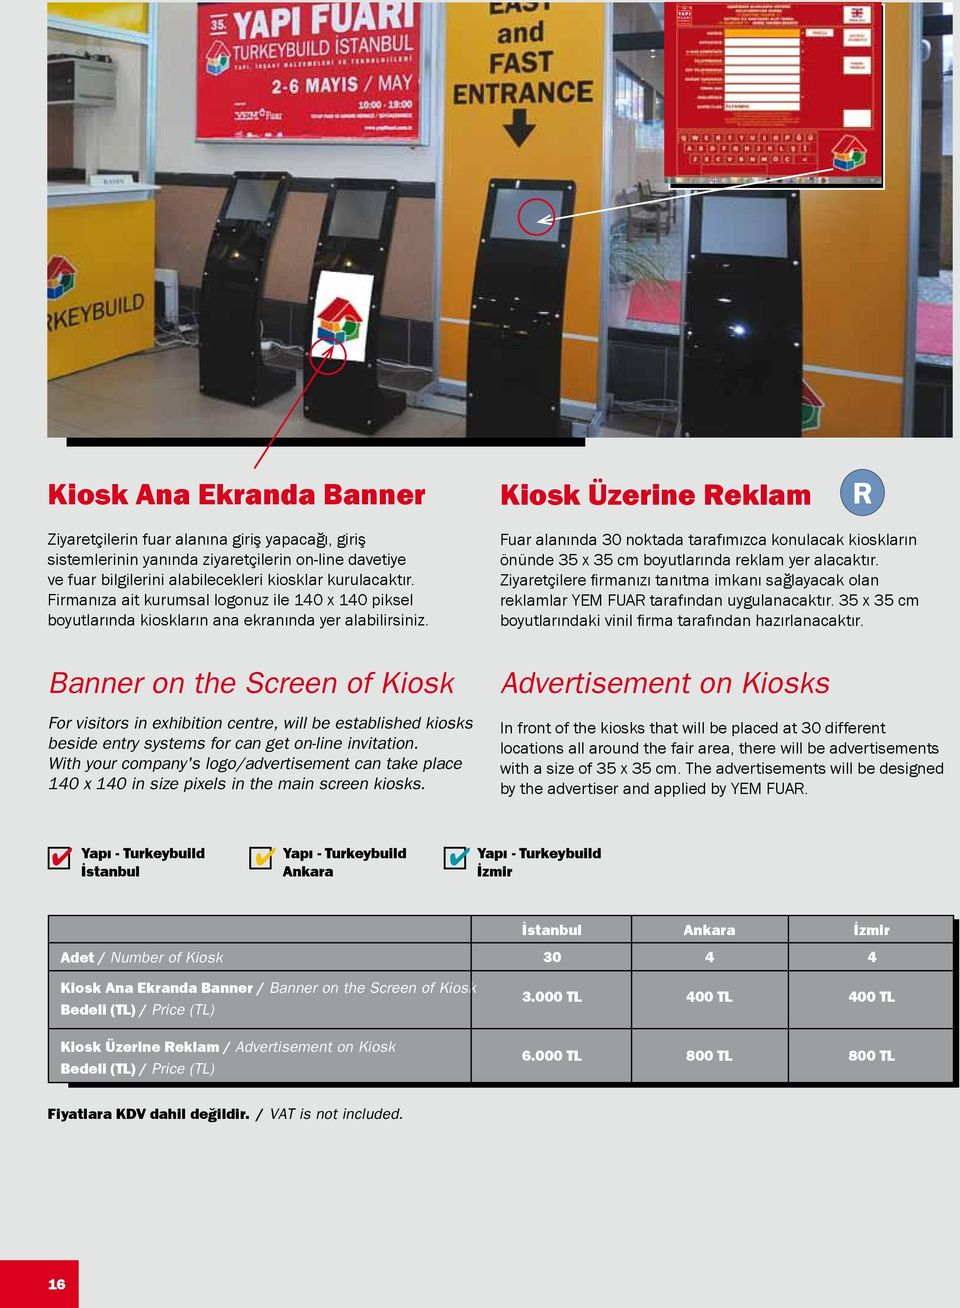 Banner on the Screen of Kiosk For visitors in exhibition centre, will be established kiosks beside entry systems for can get on-line invitation.